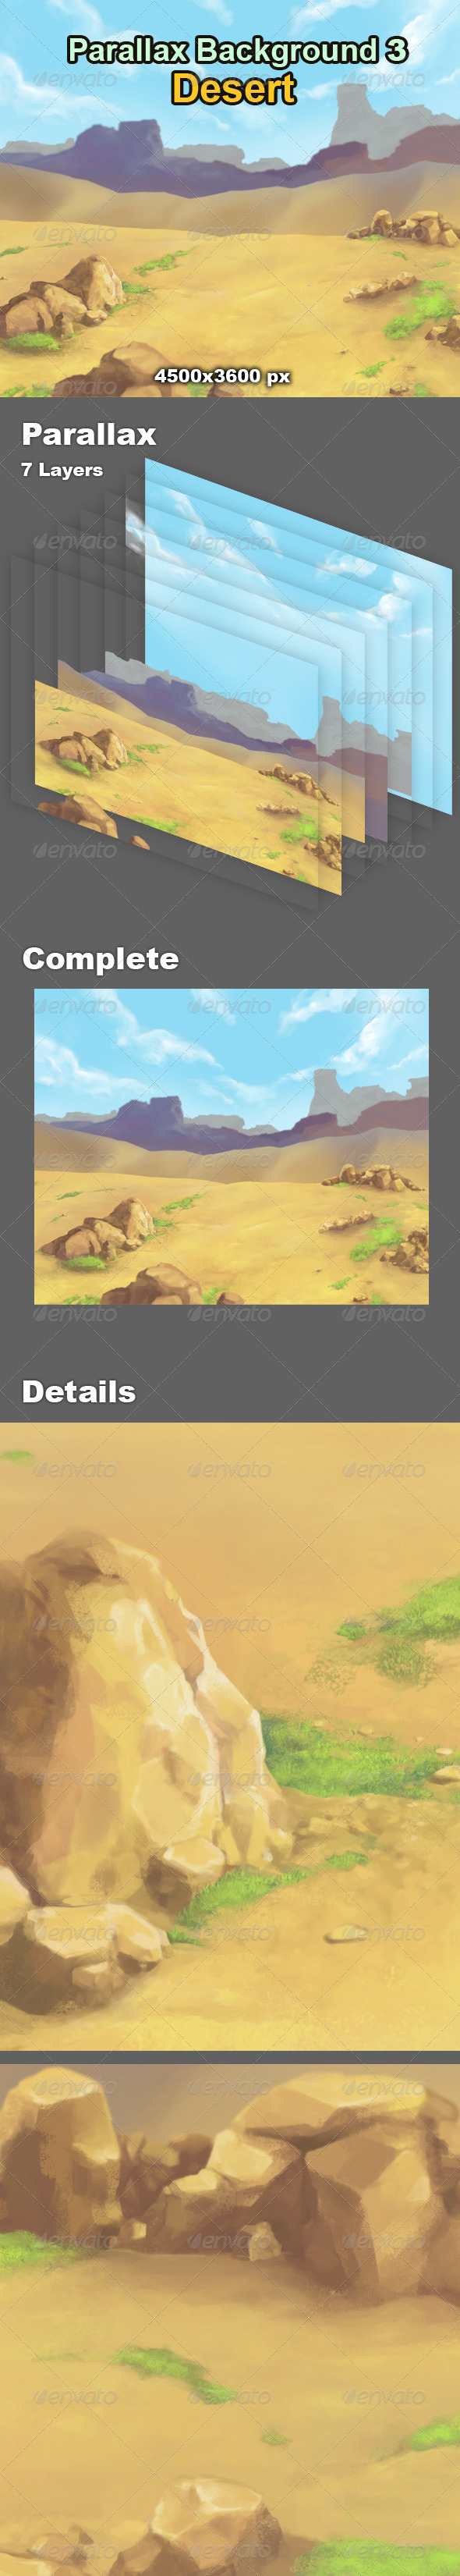 Parallax Background 3 Desert